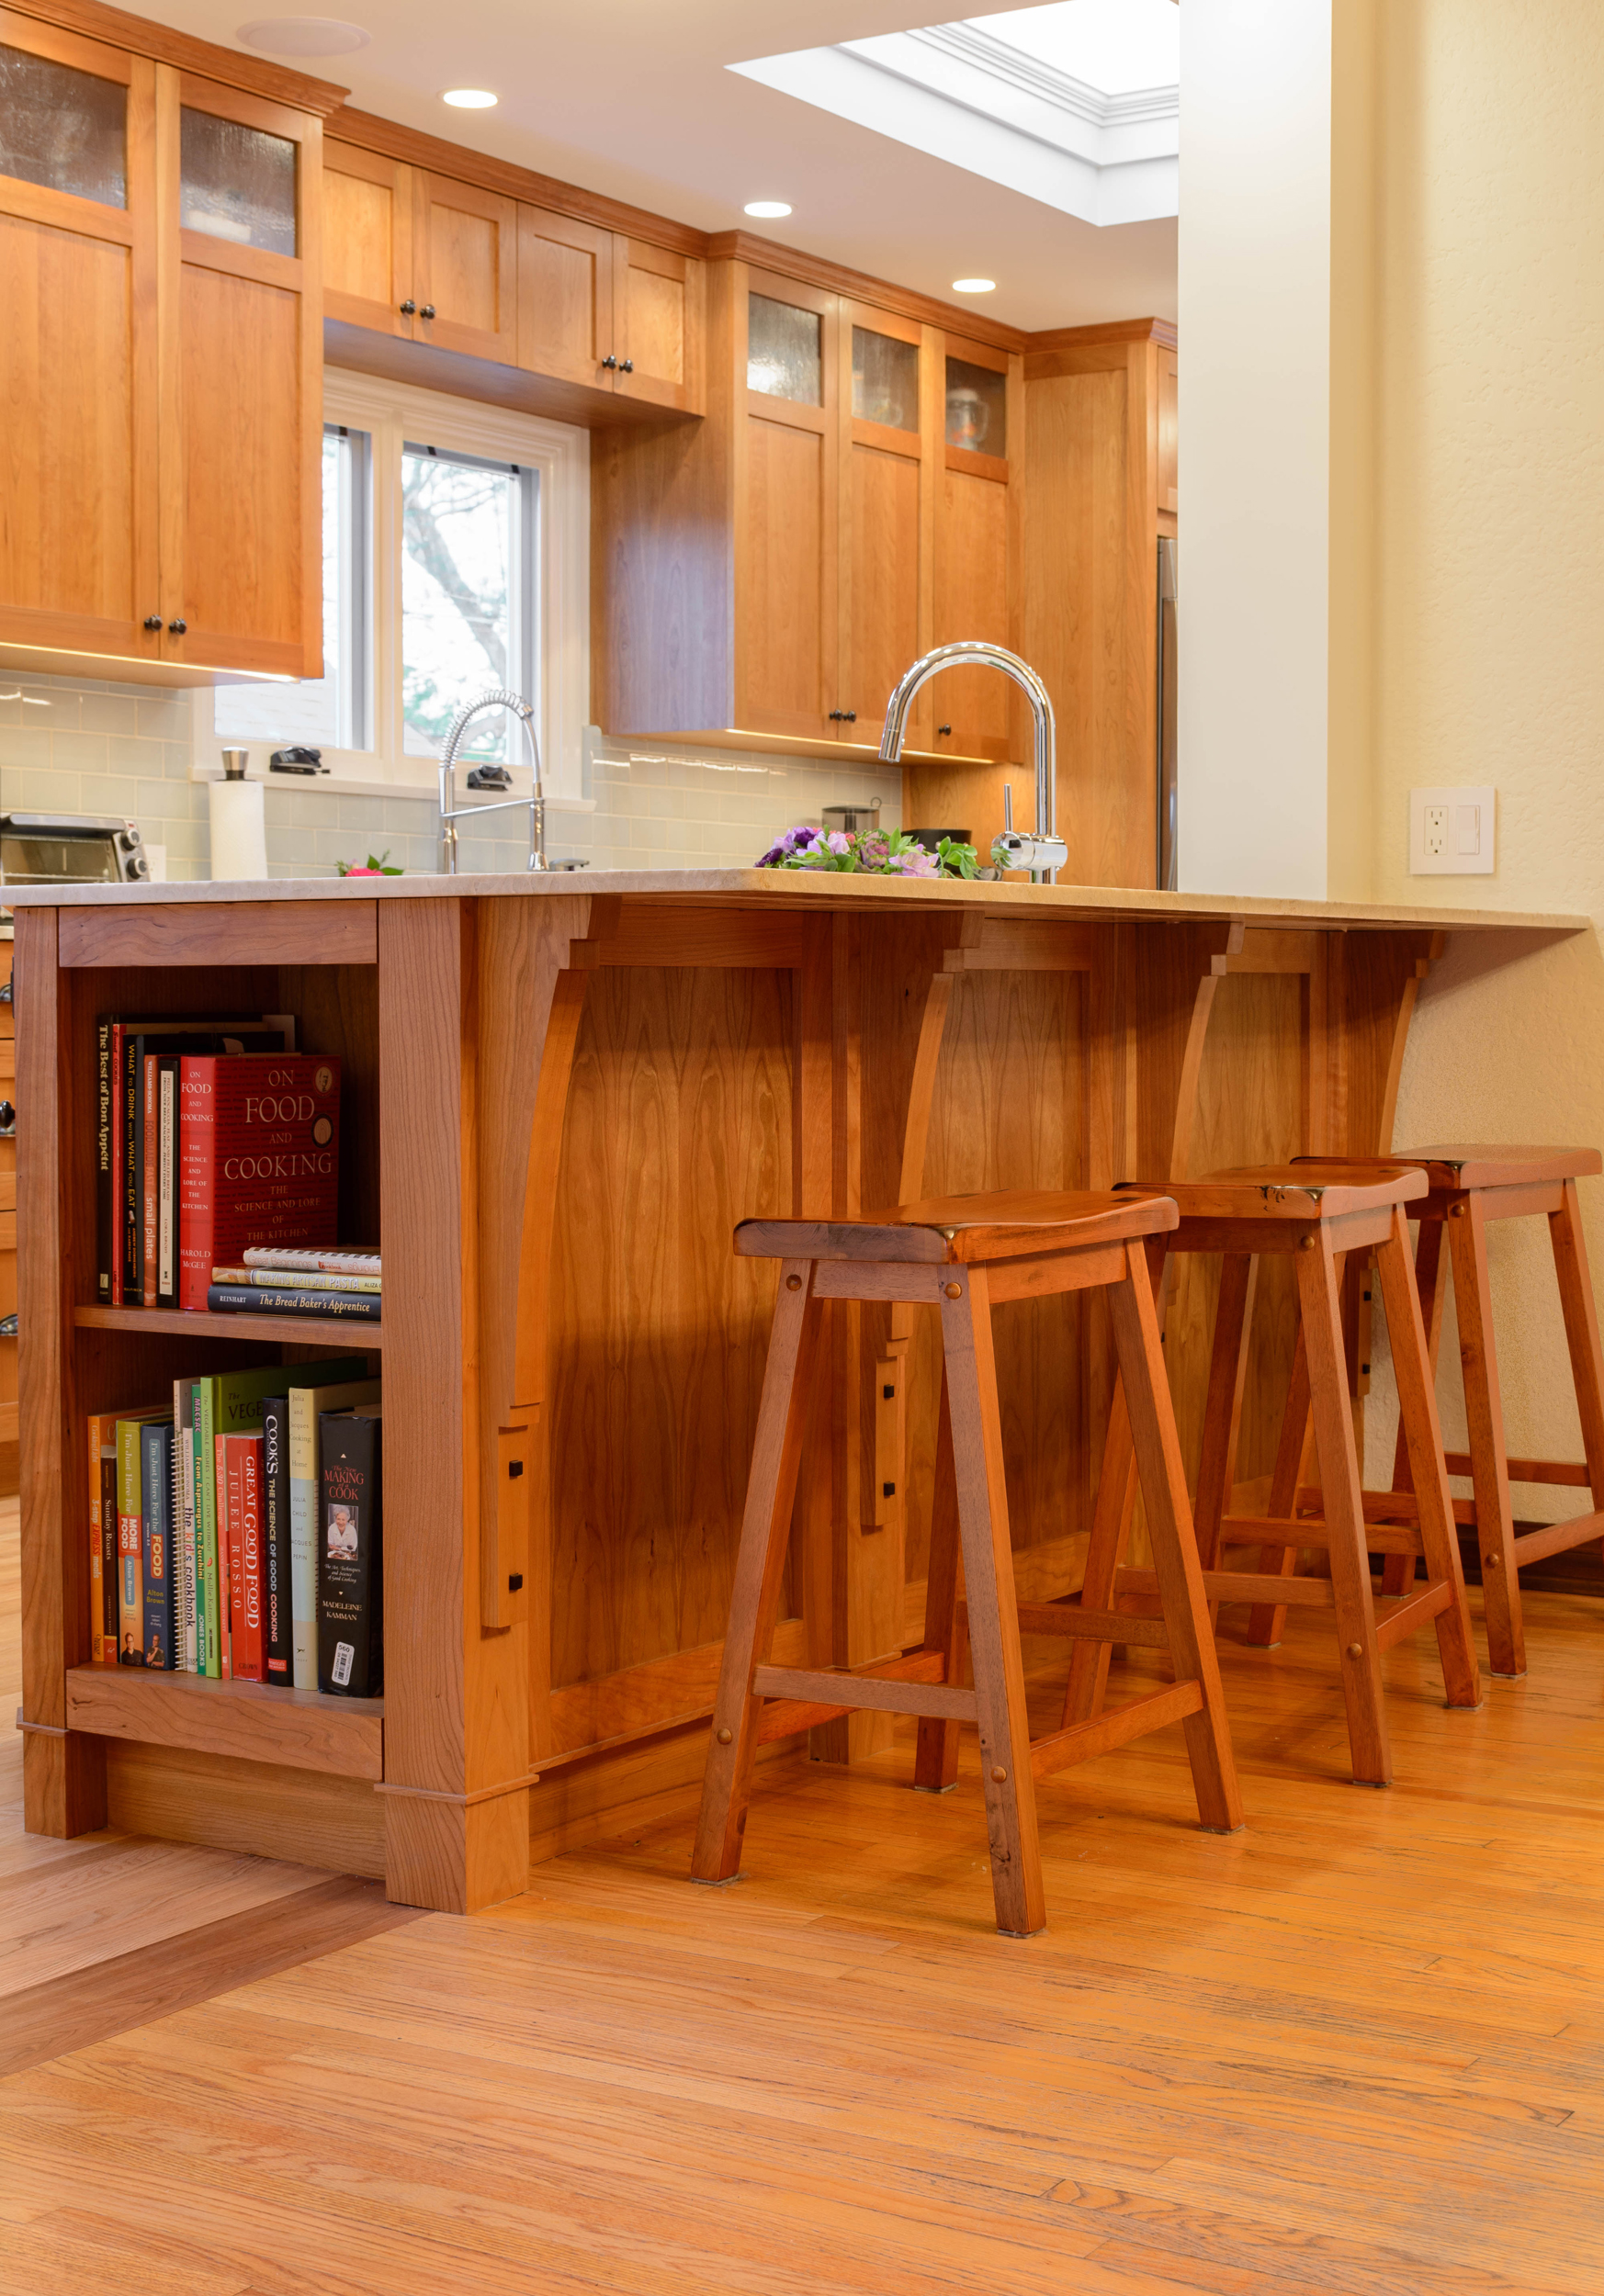 Kitchen peninsula with bar seating and bookshelves